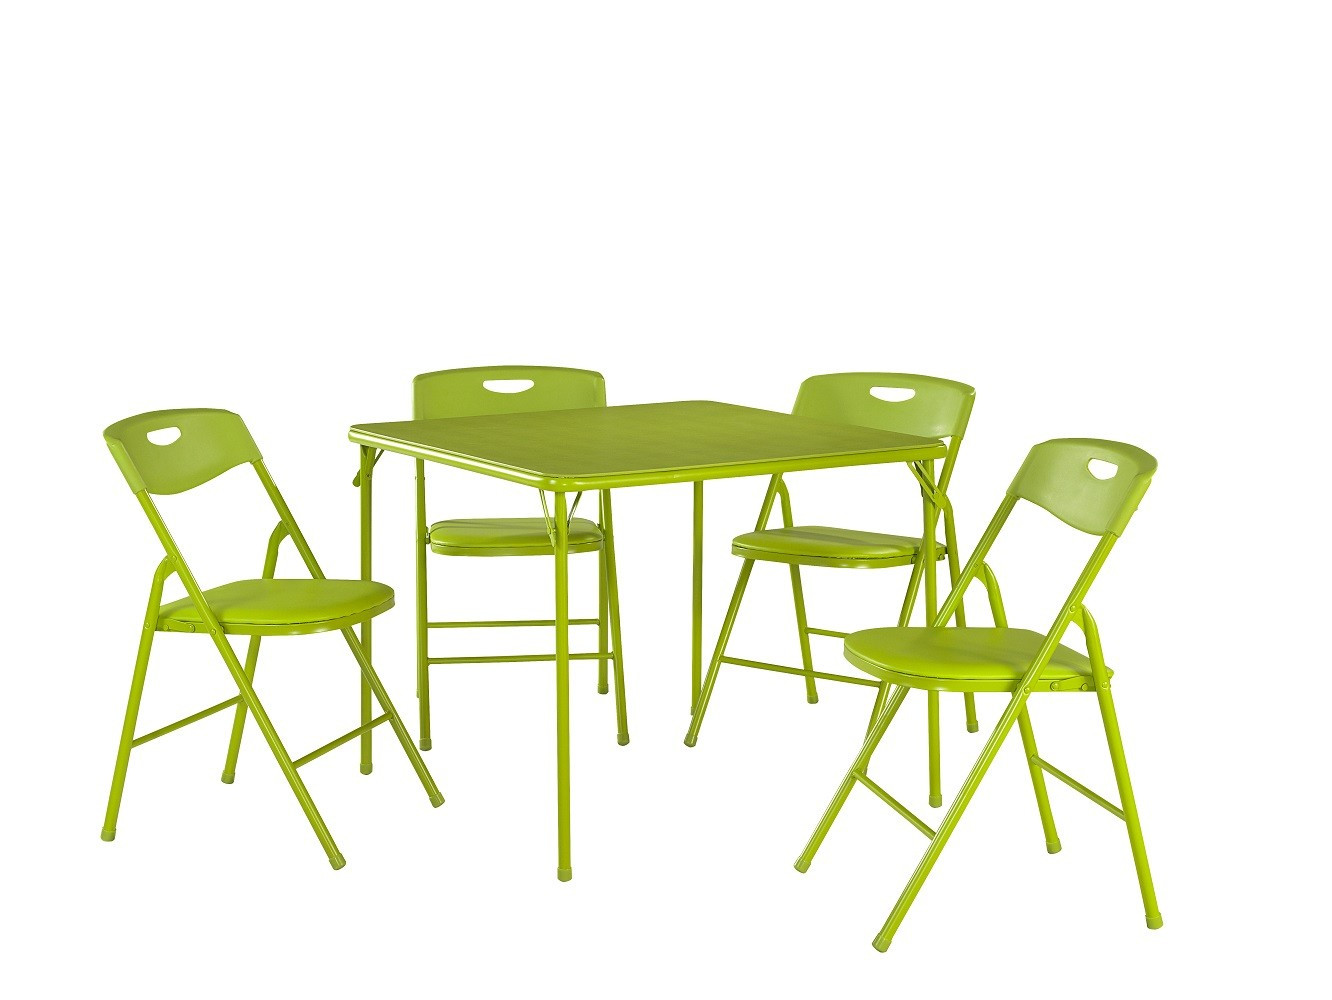 Best ideas about Table And Chair Set . Save or Pin Folding Table And Chairs Set Now.